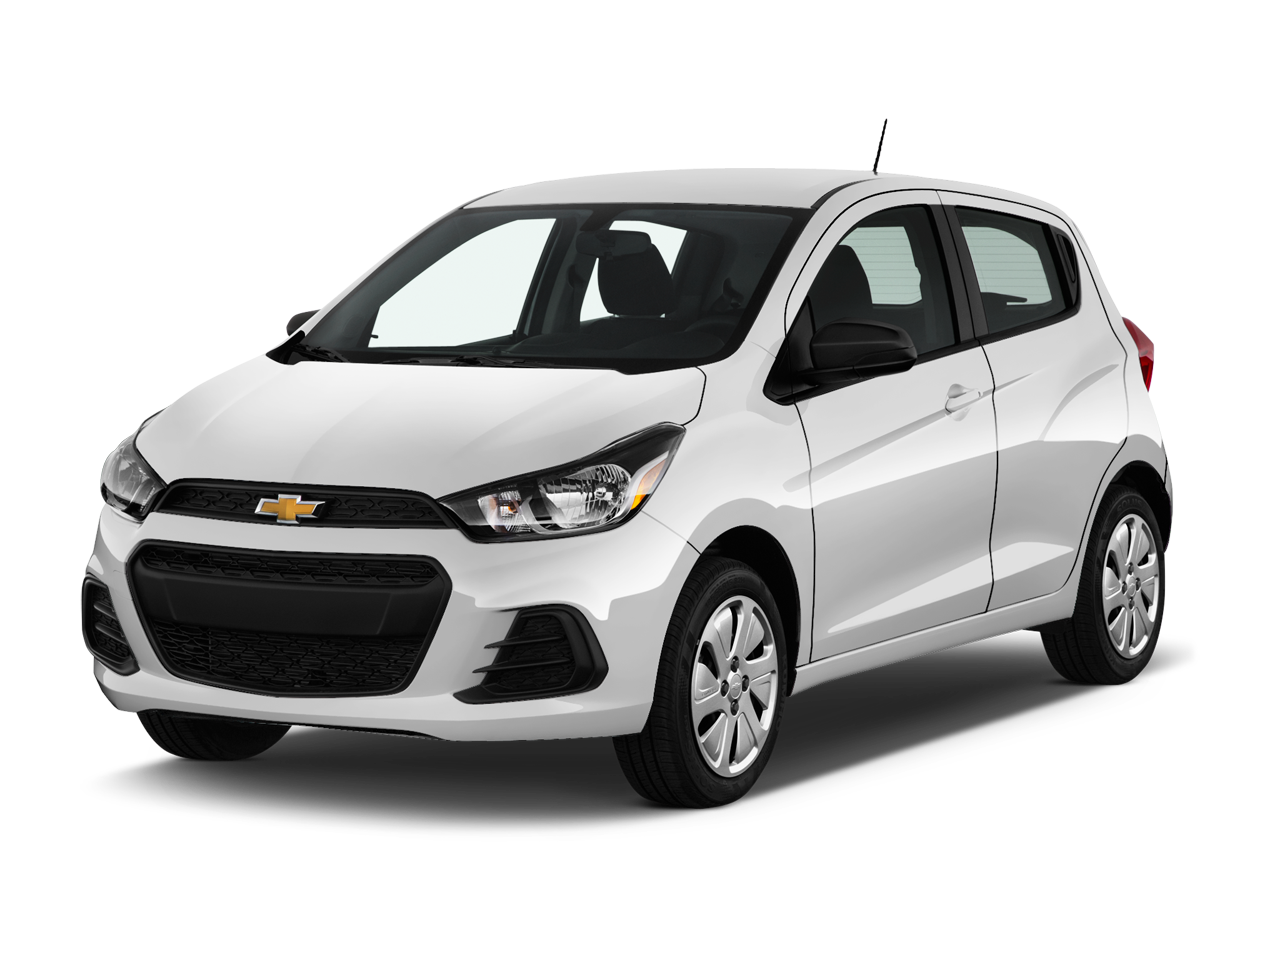 New 2017 Chevrolet Spark LS - Near Framingham MA - Herb ...